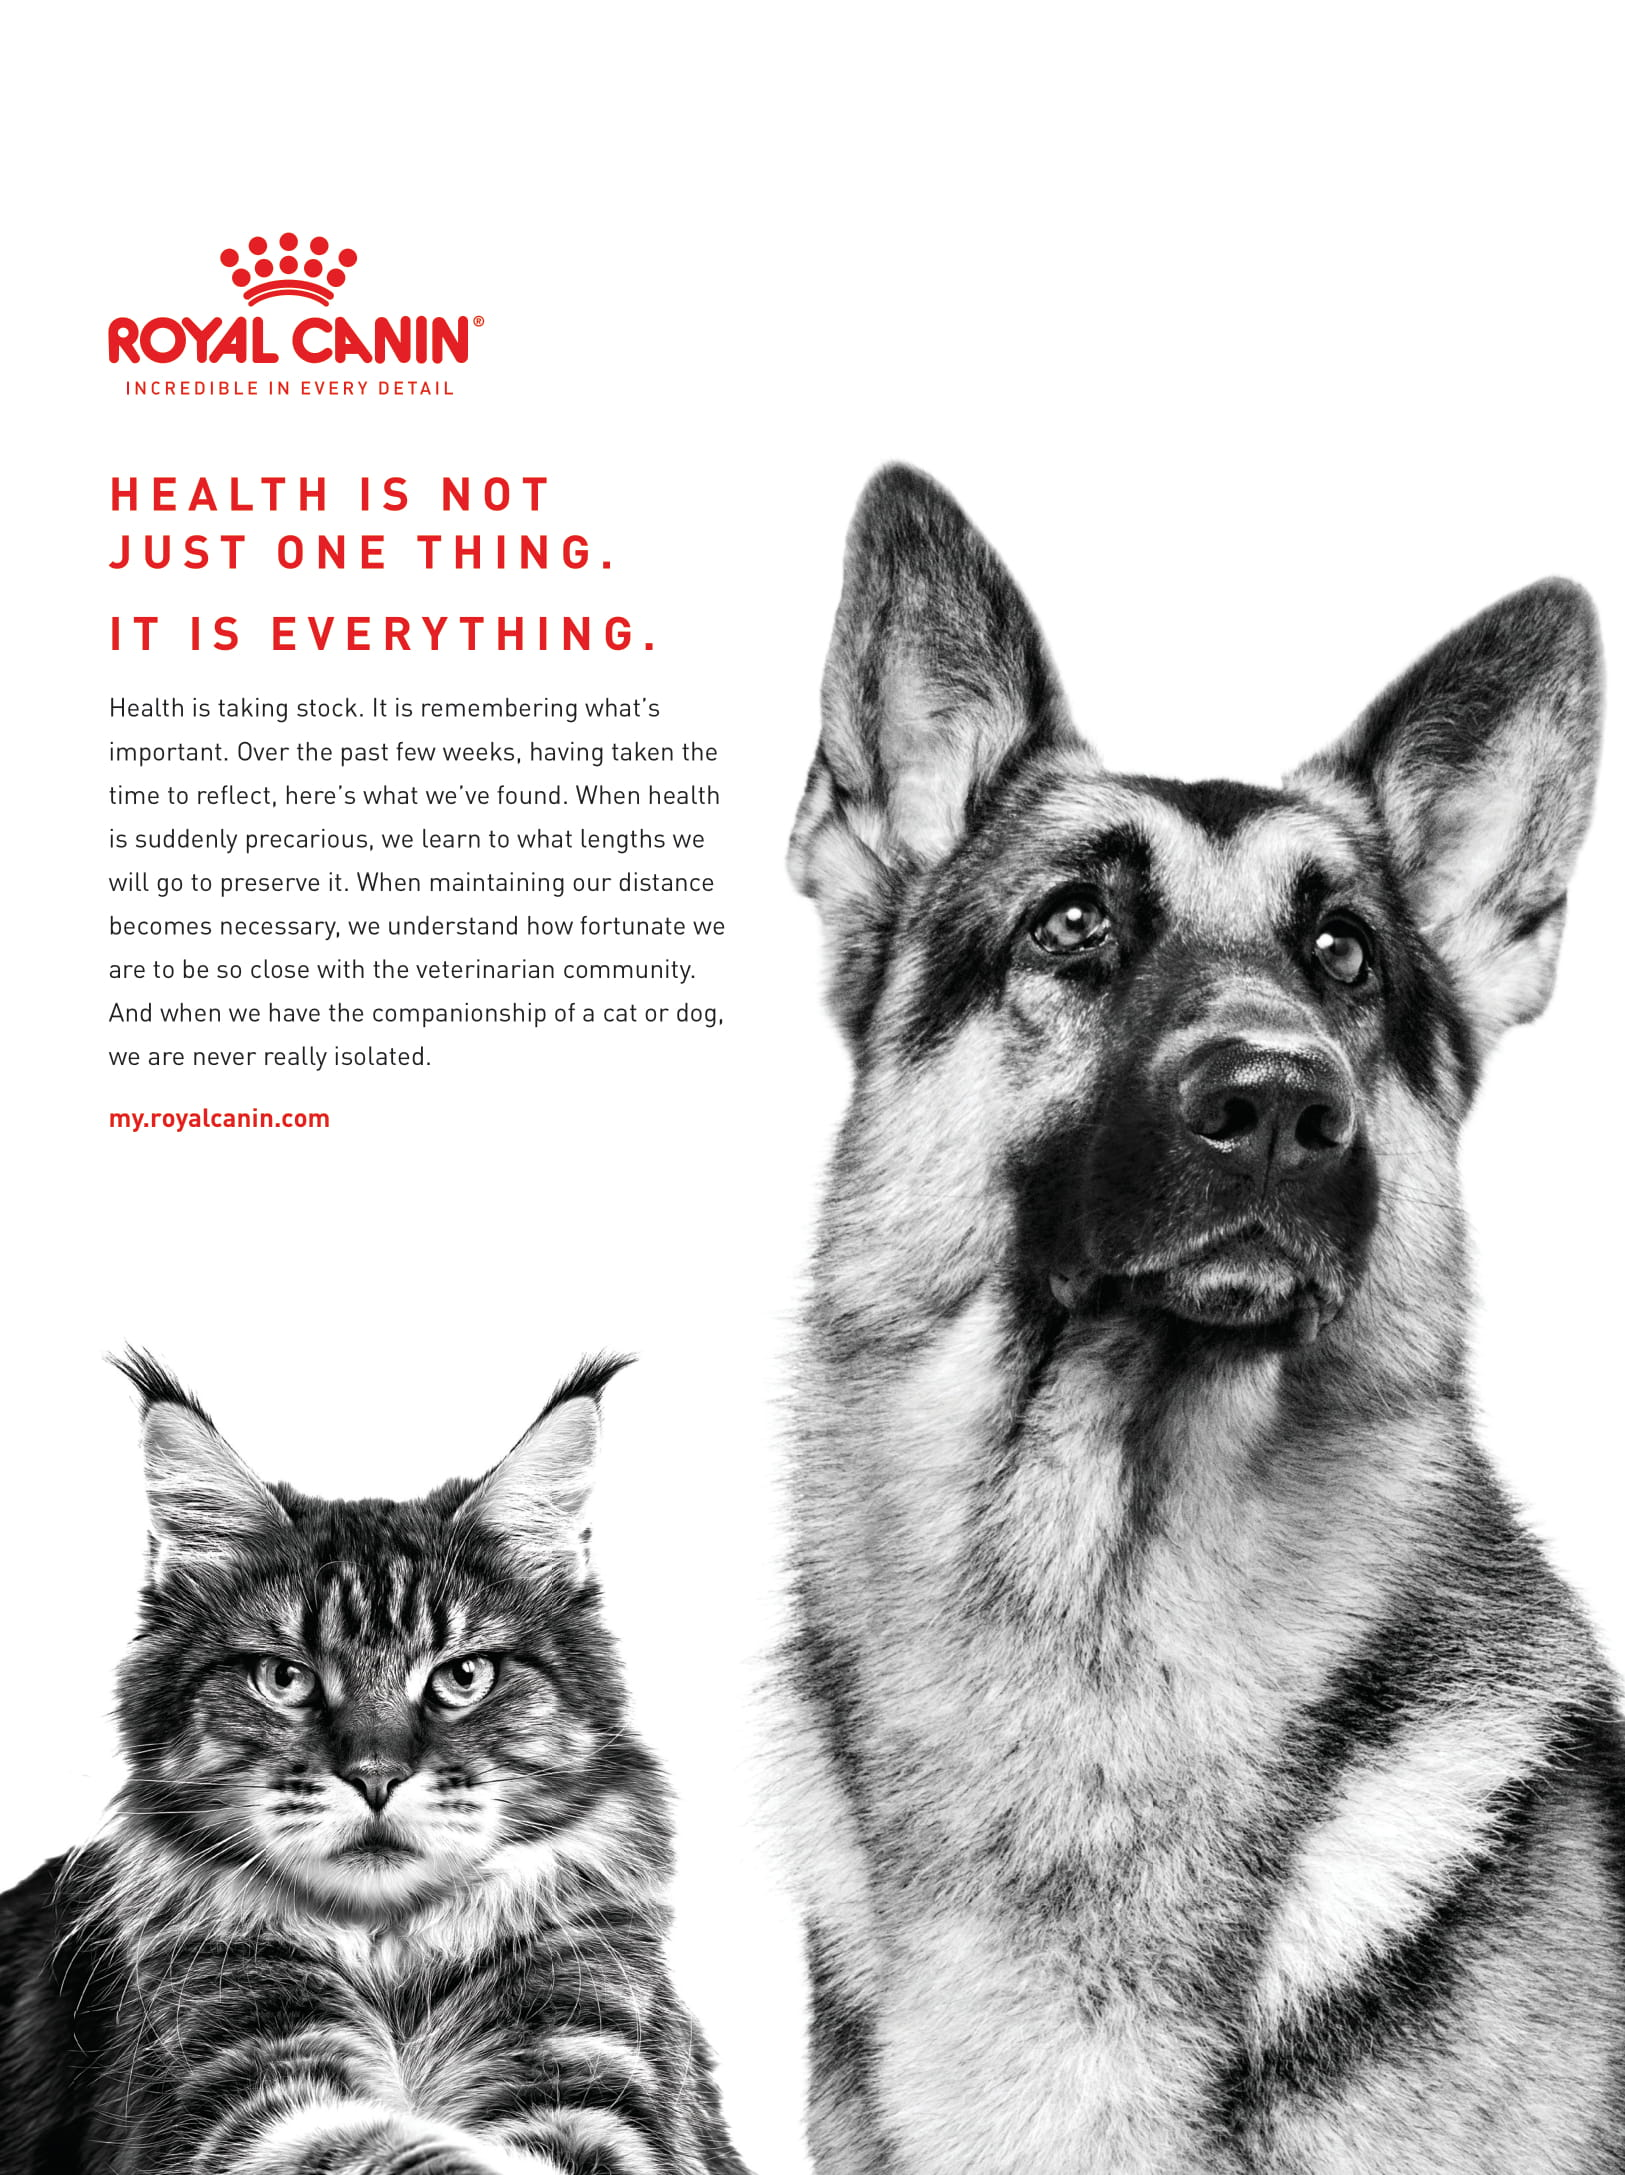 Royal Canin CB June 2020